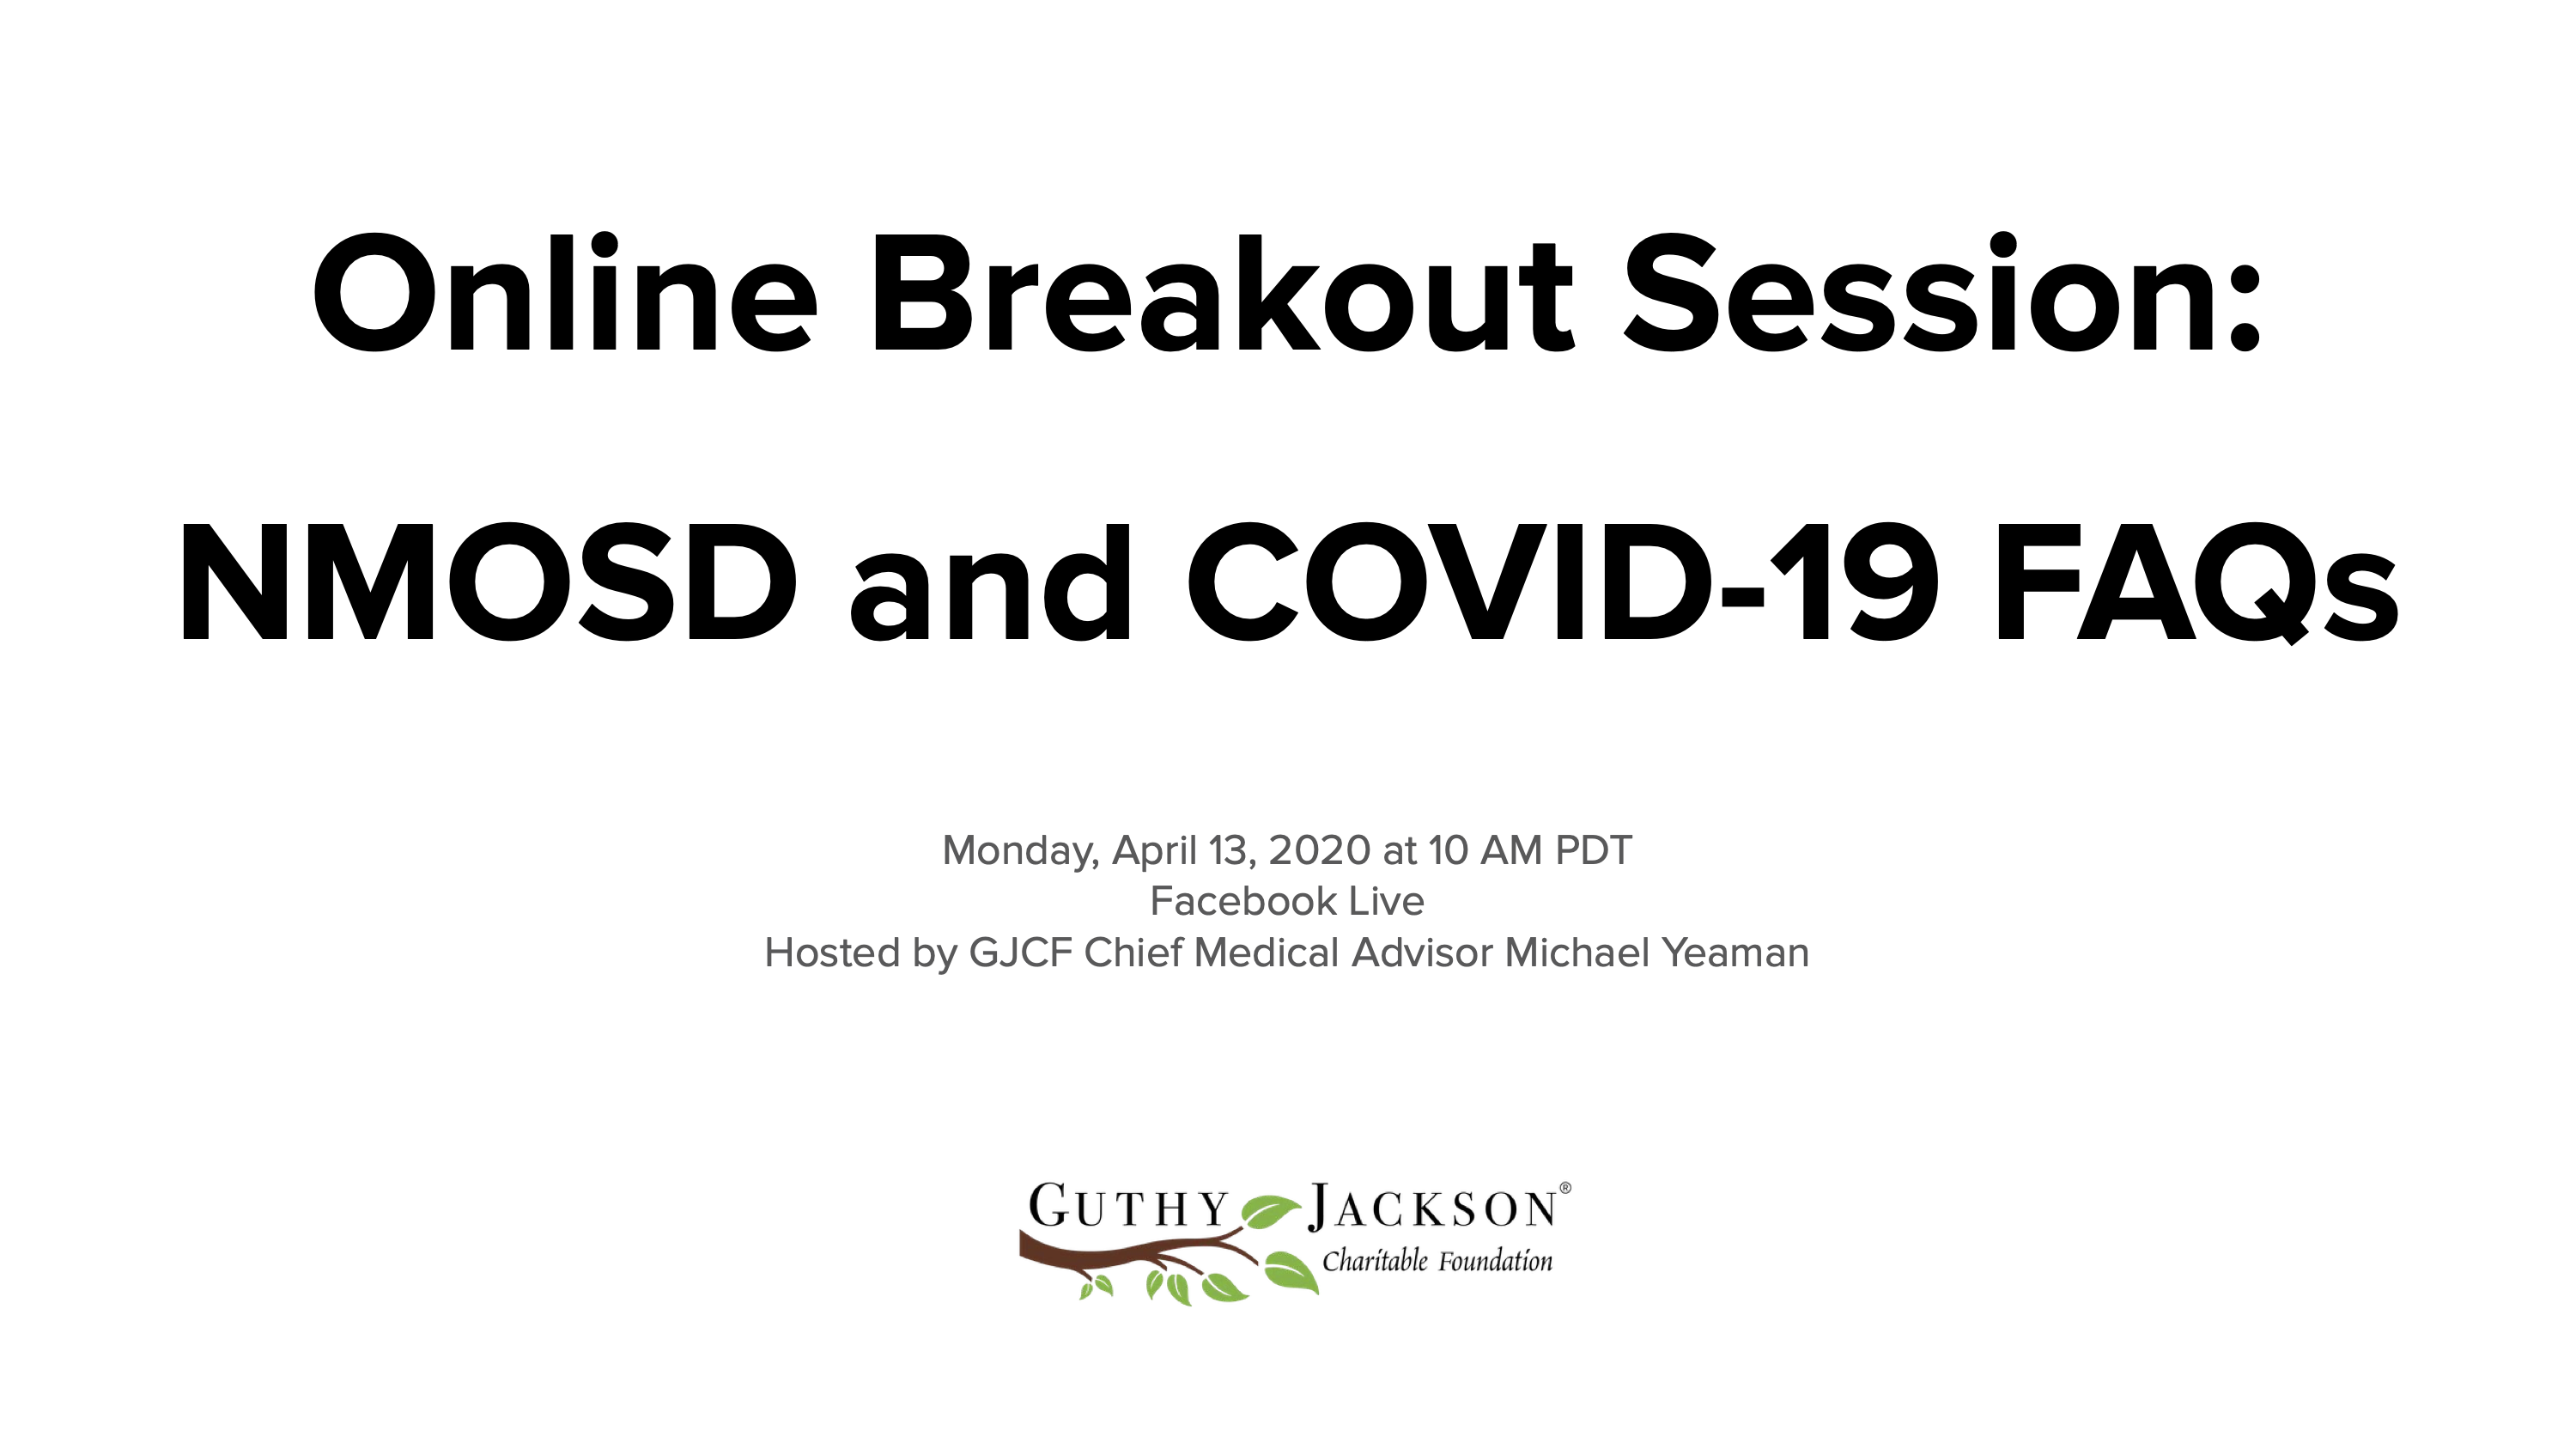 <a href='https://guthyjacksonfoundation.org/videos/online-breakout-session-nmosd-and-covid-19-faqs/' title='Online Breakout Session: NMOSD and COVID-19 FAQs'>Online Breakout Session: NMOSD and COVID-19 FAQs</a>